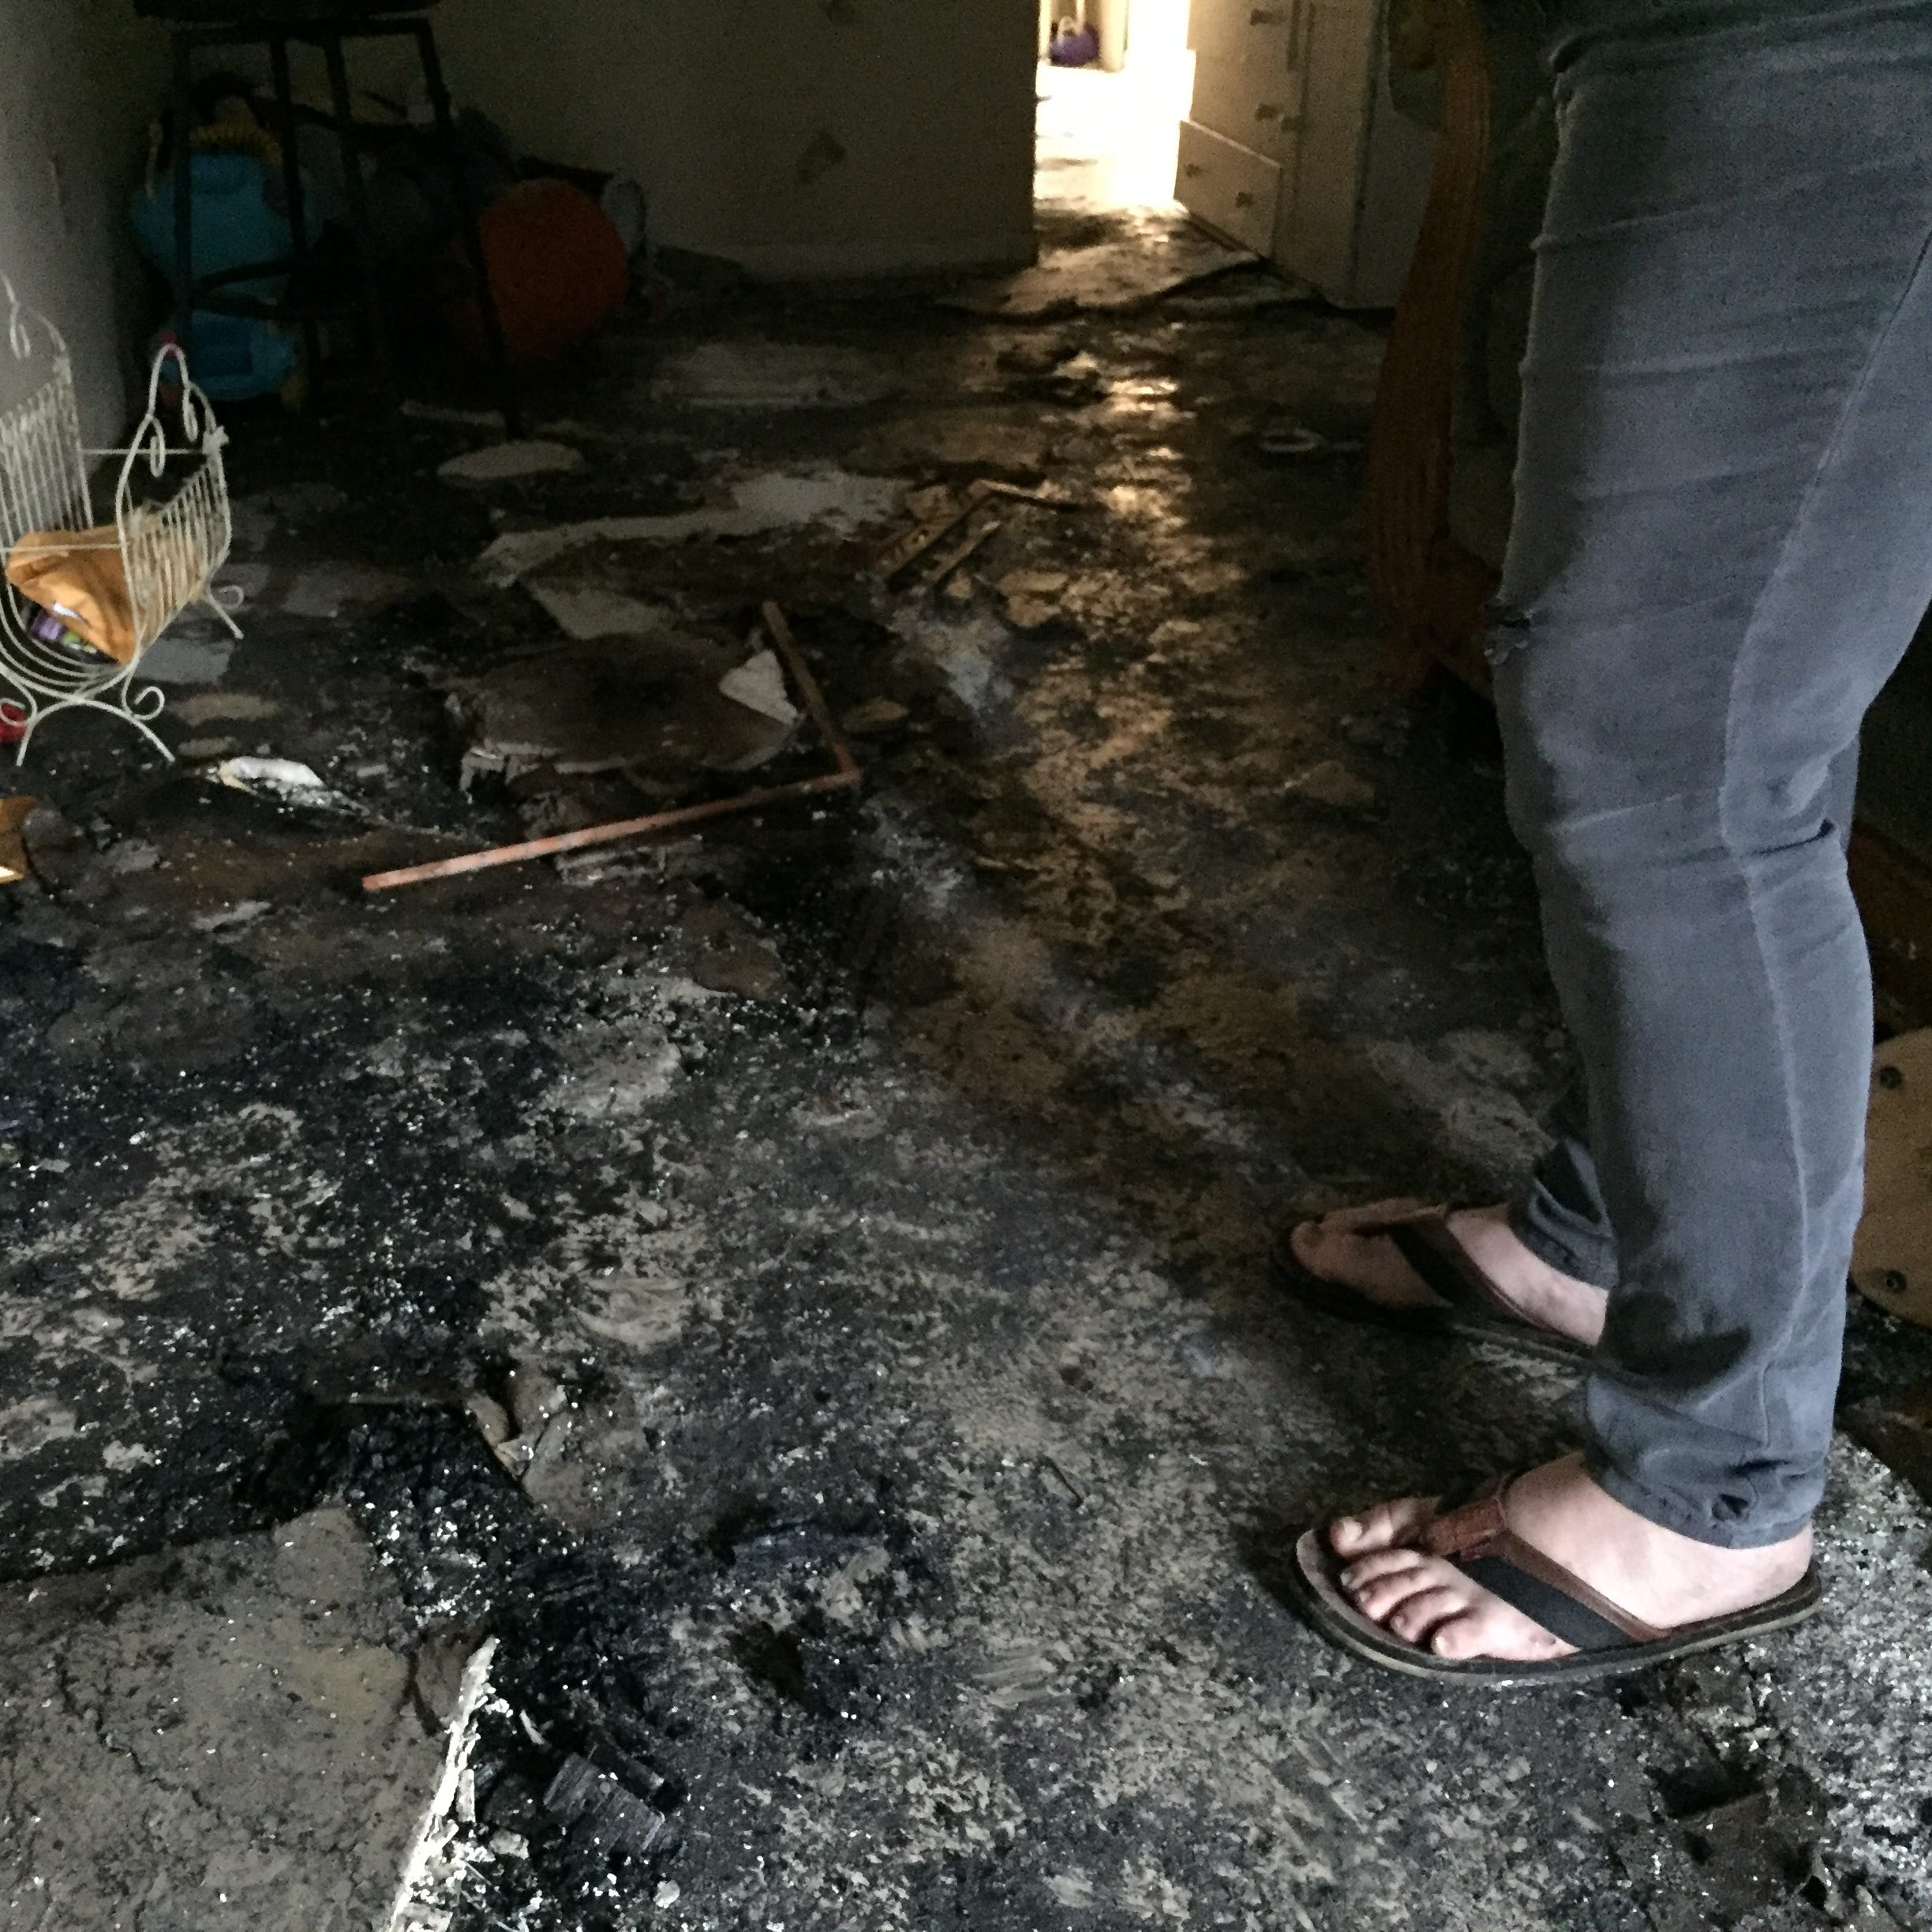 Casey Ambros walks through her charred apartment after salvaging the last of what she could: food from the freezer. She is one of 22 people displaced by the Friday morning fire.